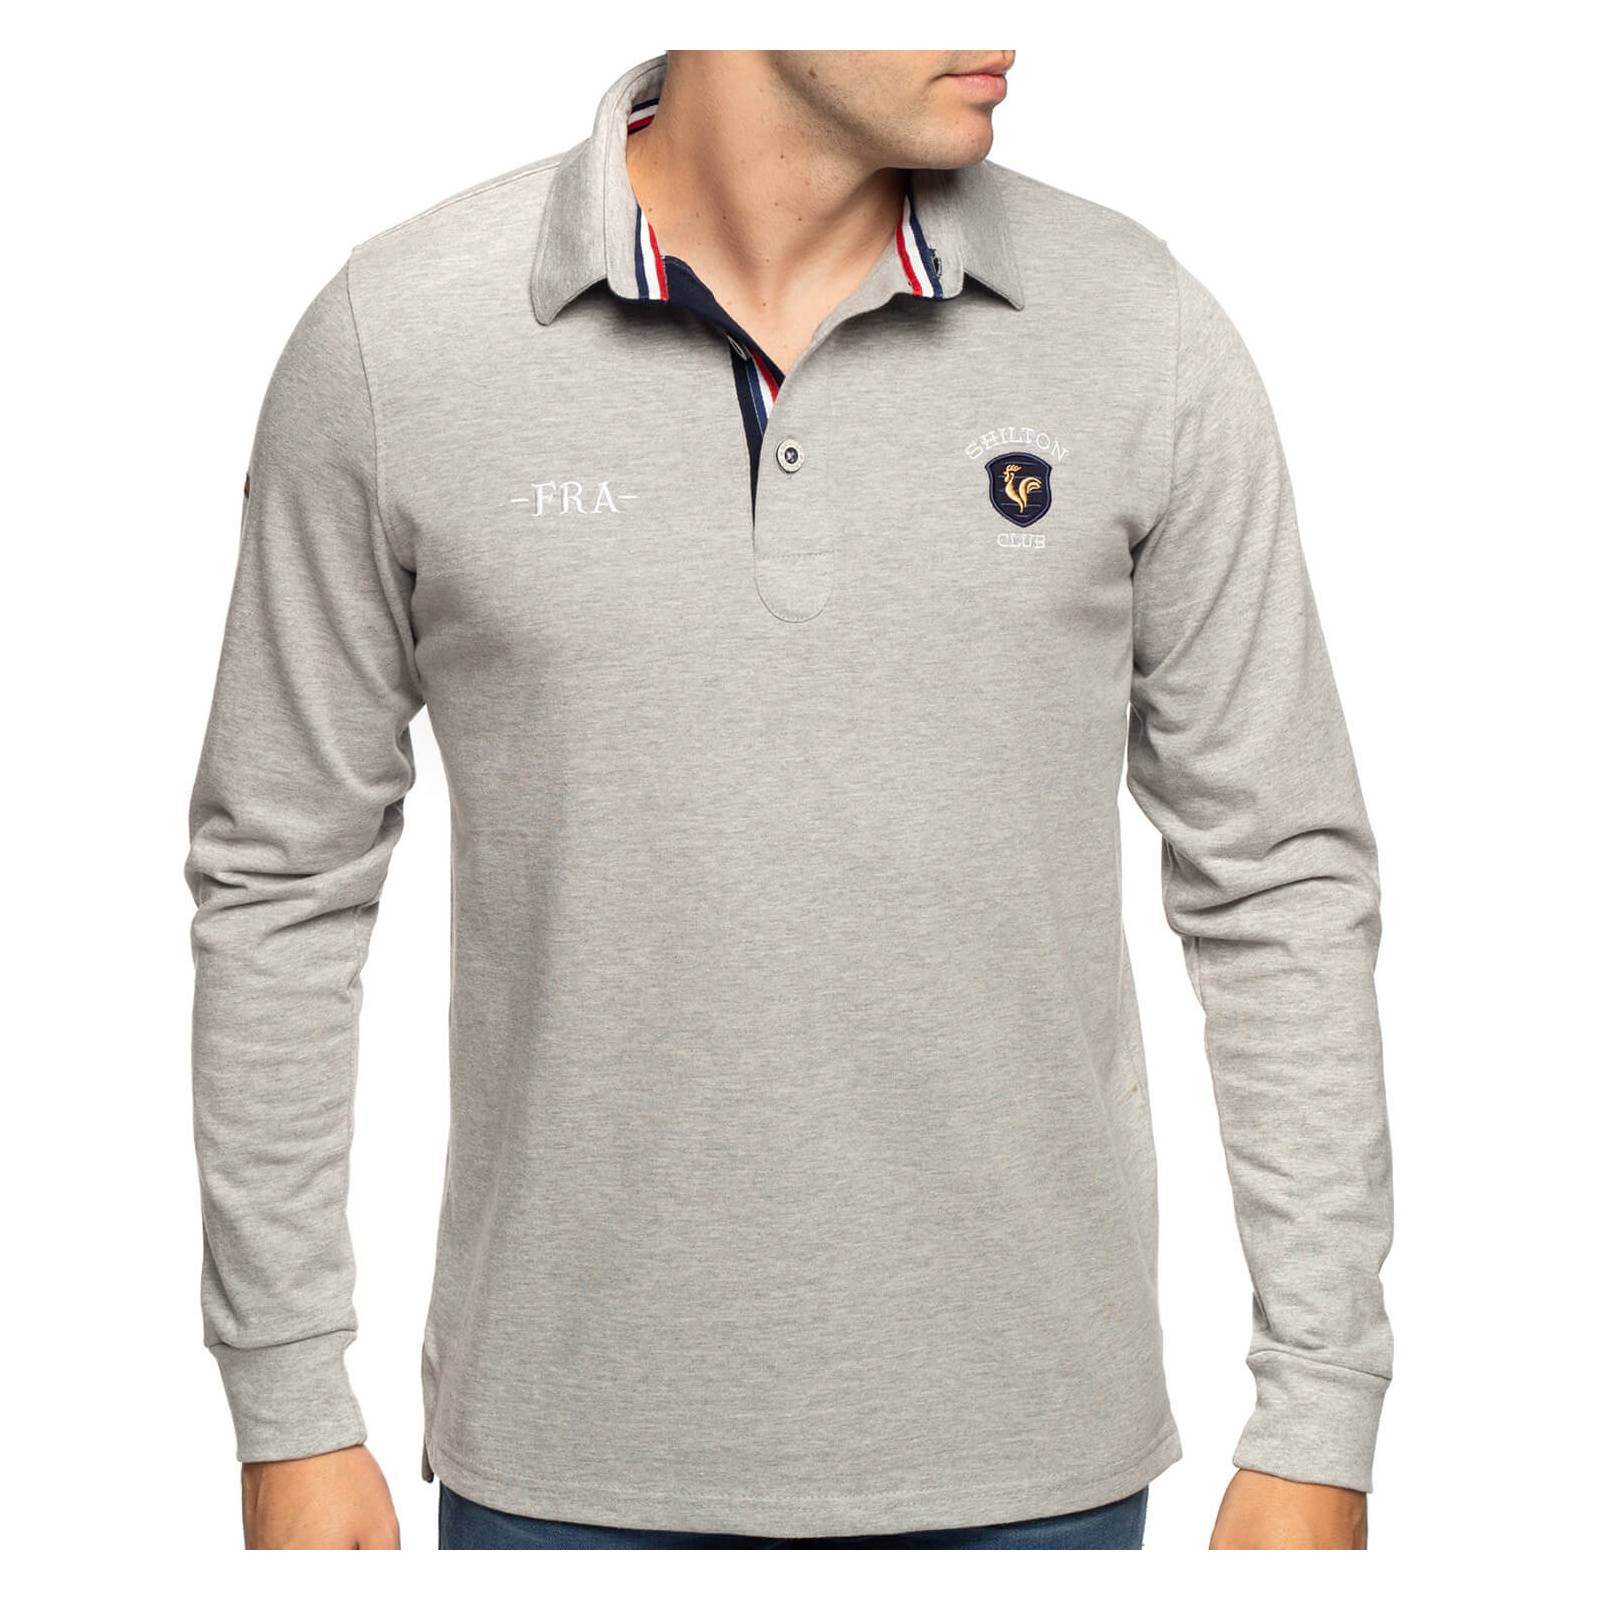 Shilton Polo rugby nation France - Gris - L